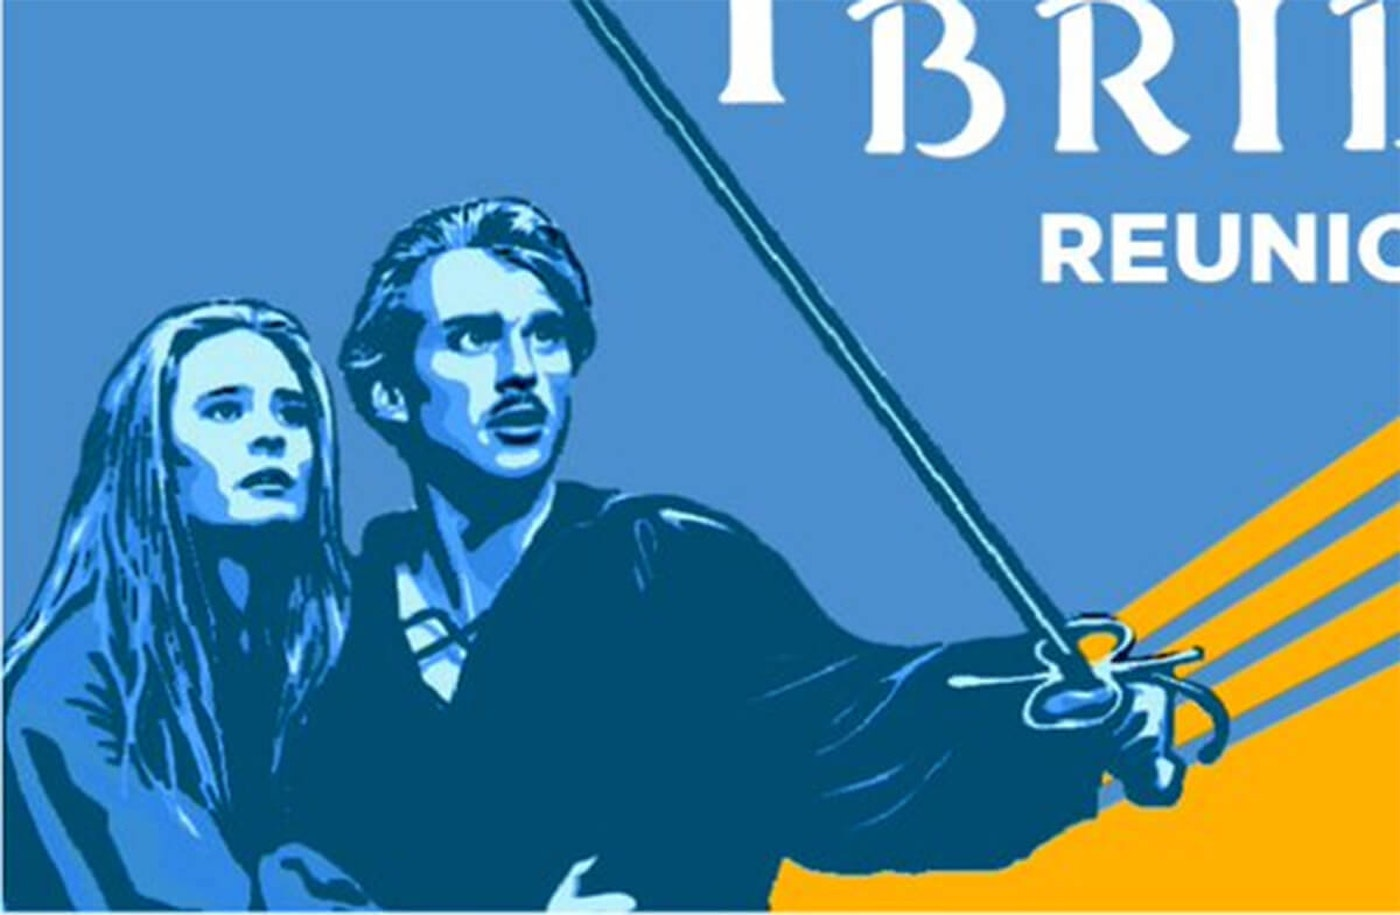 """Robin Wright and Cary Elwes reunite with the cast of """"The Princess Bride"""" for a Democratic Party of Wisconsin fundraiser Sunday. (Image DPW)"""